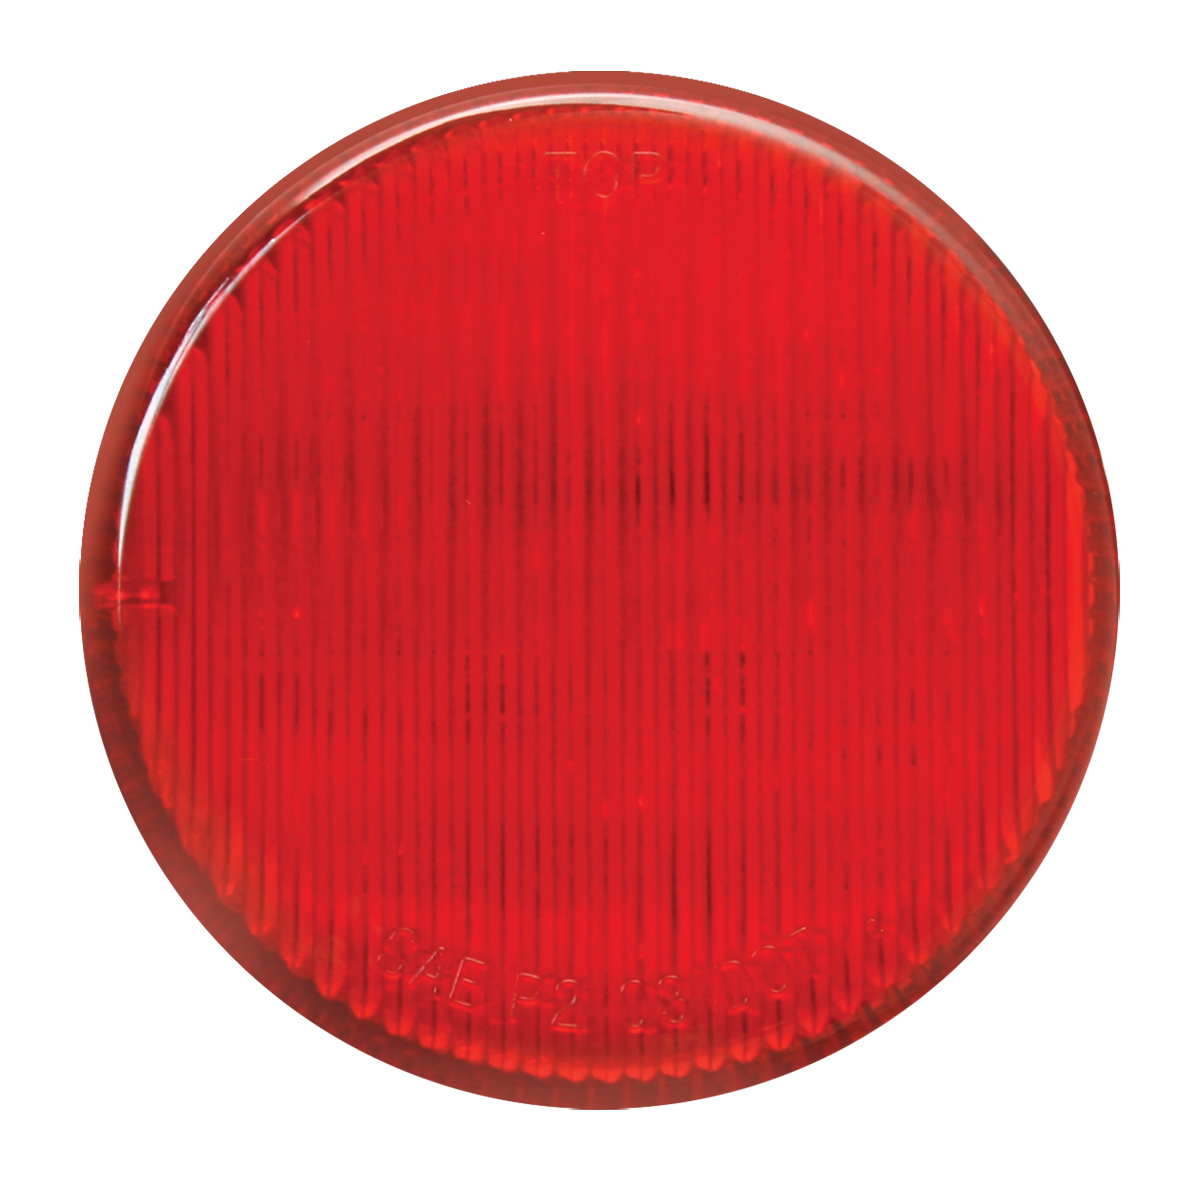 "79311 2-1/2"" Round Fleet Marker Light"